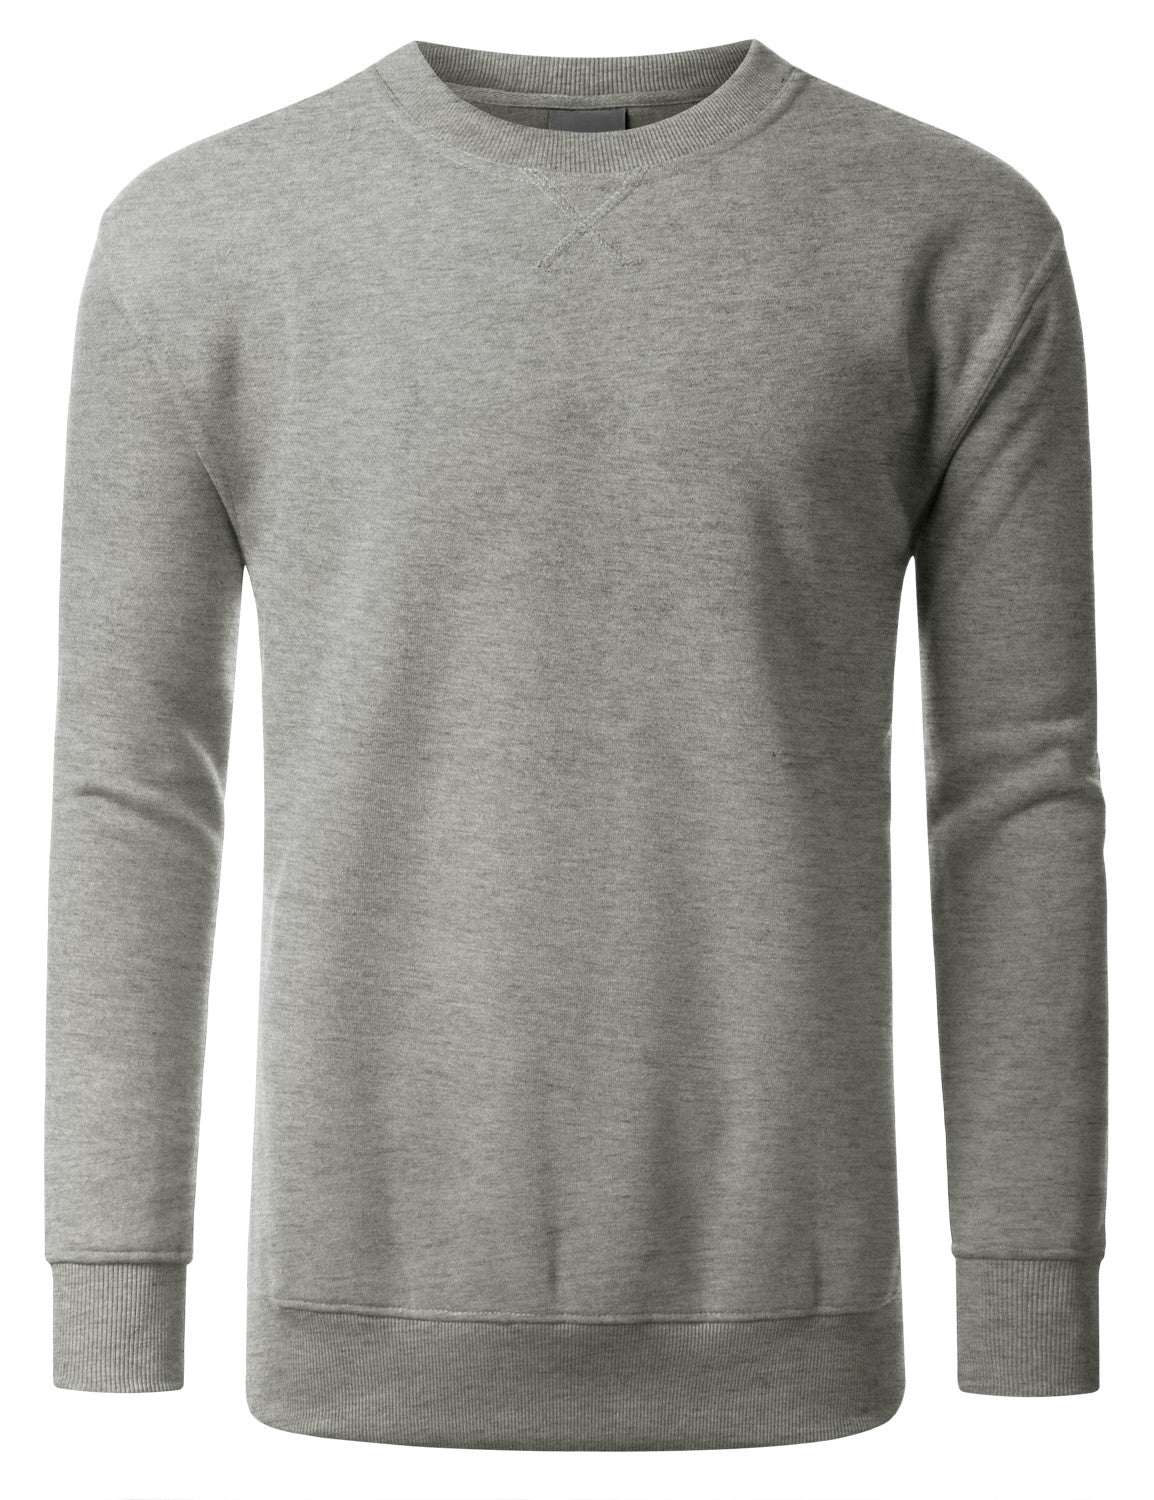 HGRAY Basic Crewneck Sweatshirt-Various Colors - URBANCREWS